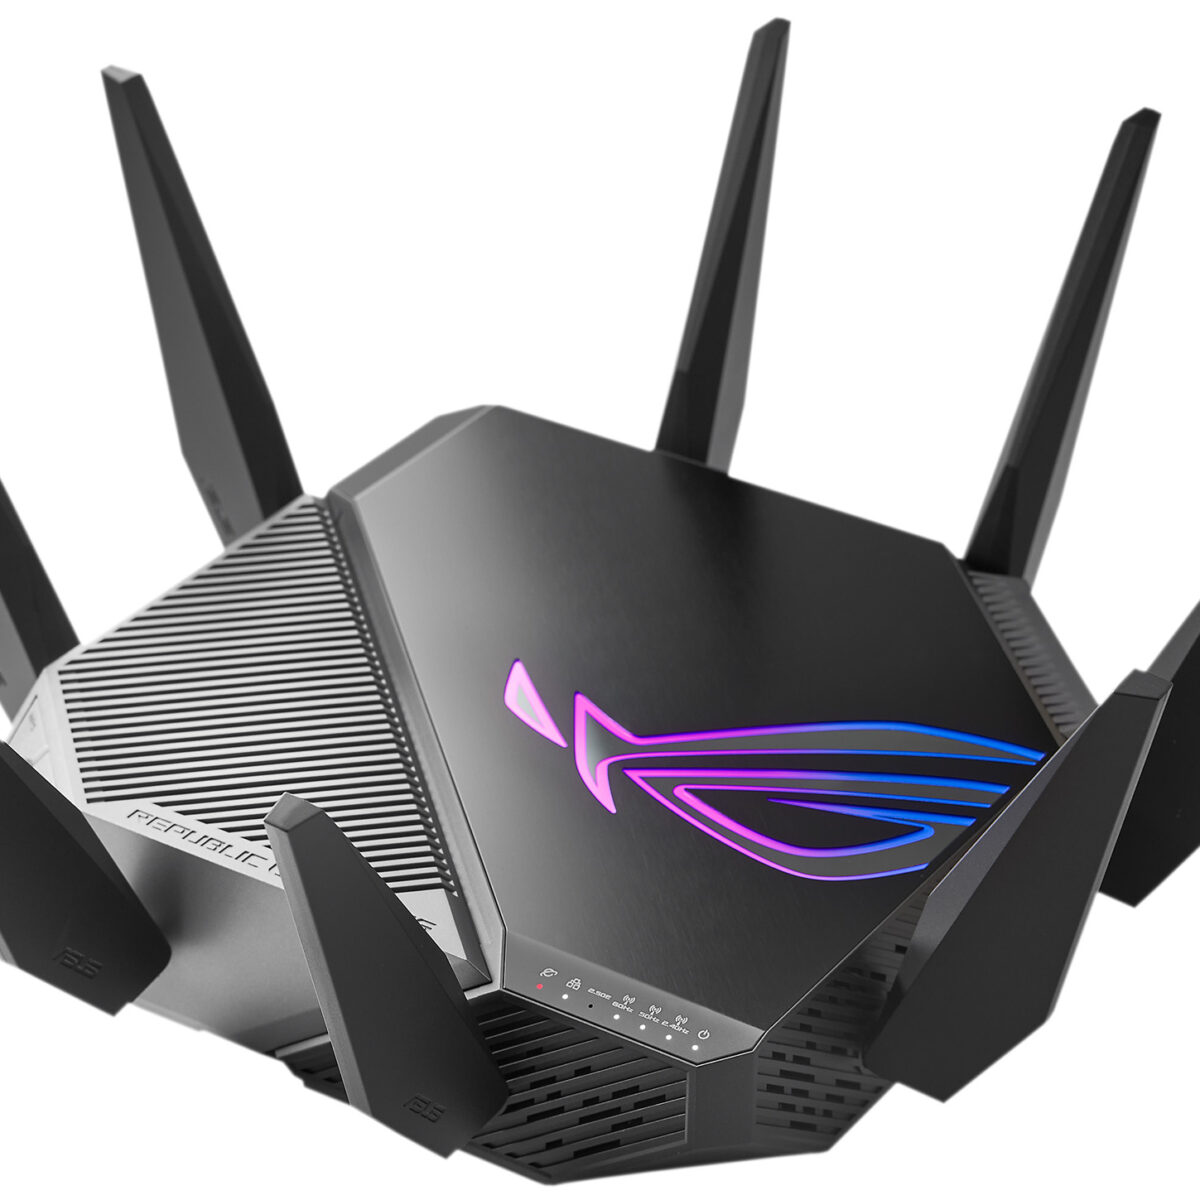 ASUS Rapture GT-AXE11000 Wi-Fi 6E Router